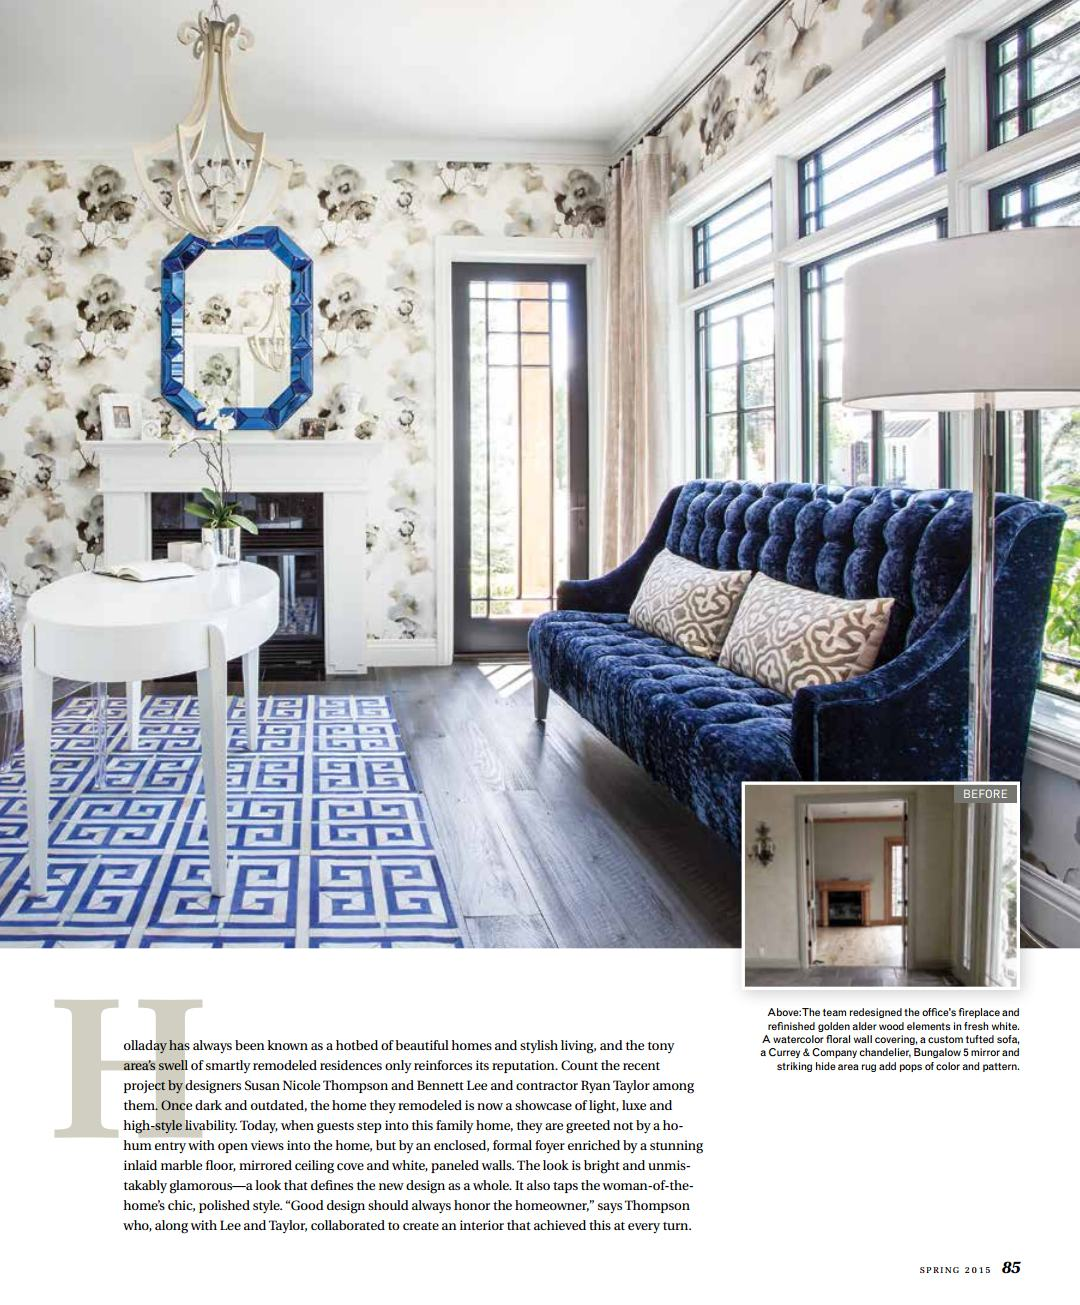 Utah Style & Design Cover Spring 2015 and Spread | Upland ... - photo#15